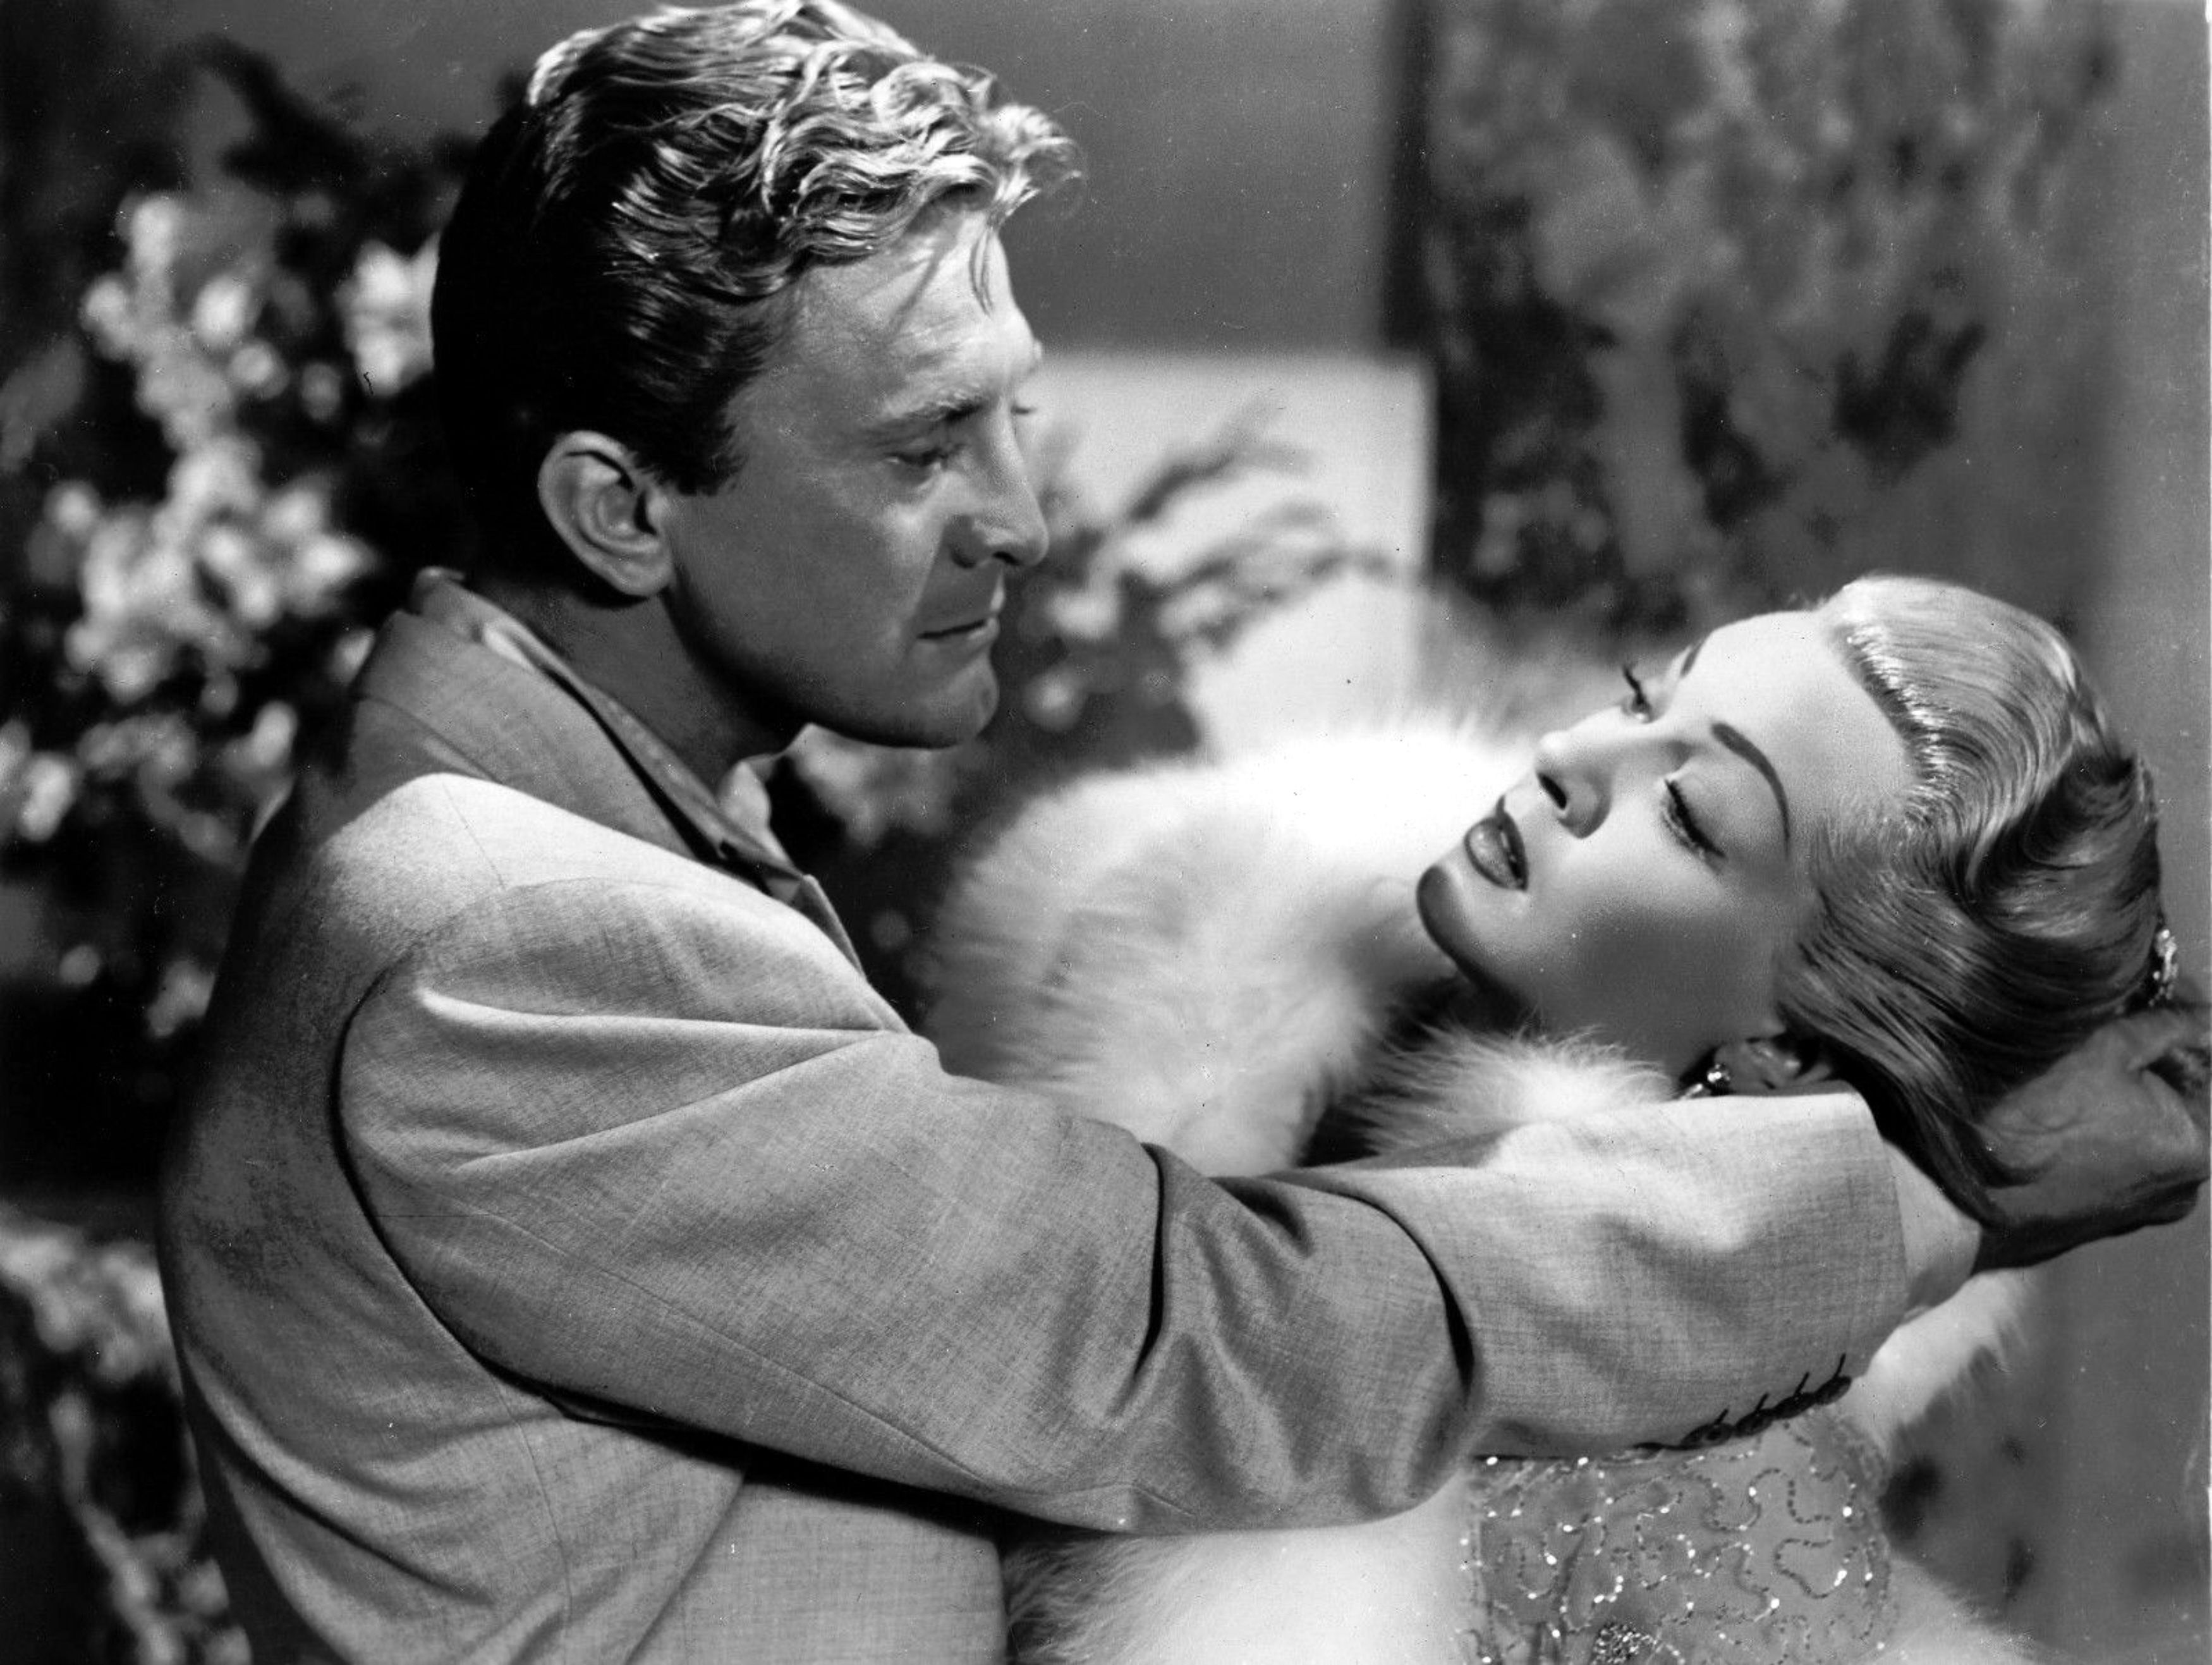 Jonathan Shields, The Bad and the Beautiful (1952)